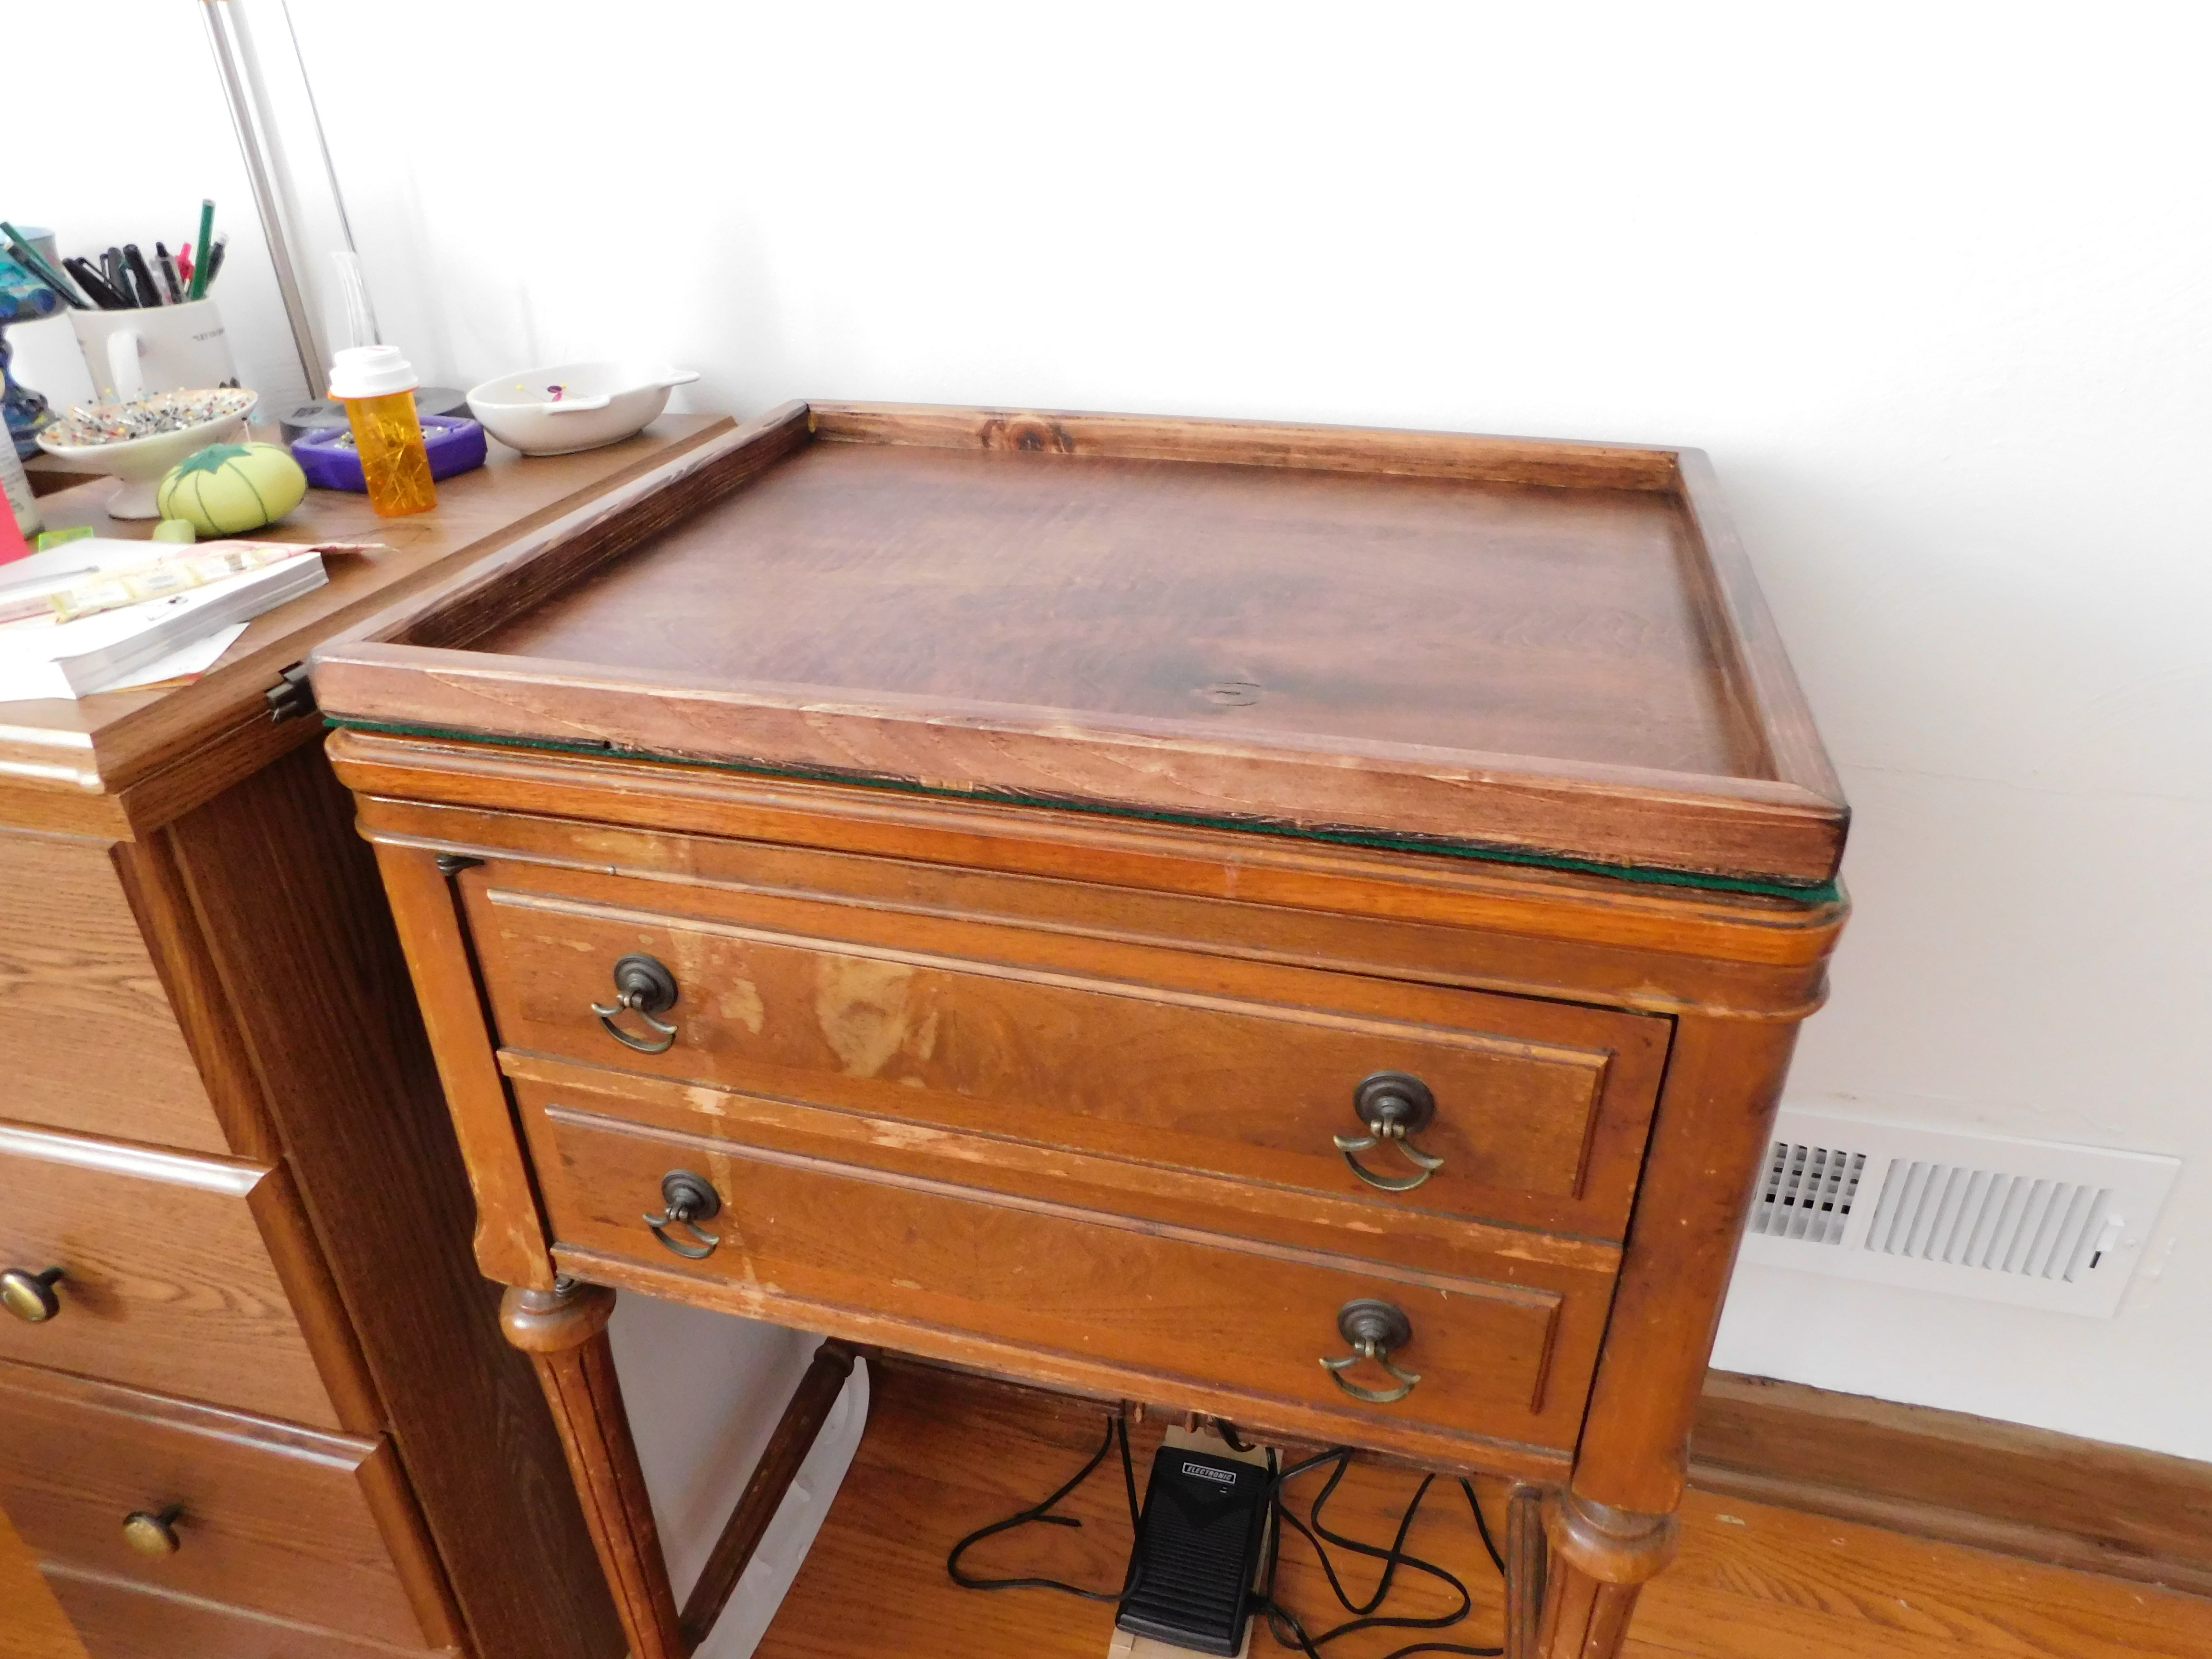 Sewing Tray on Cabinet